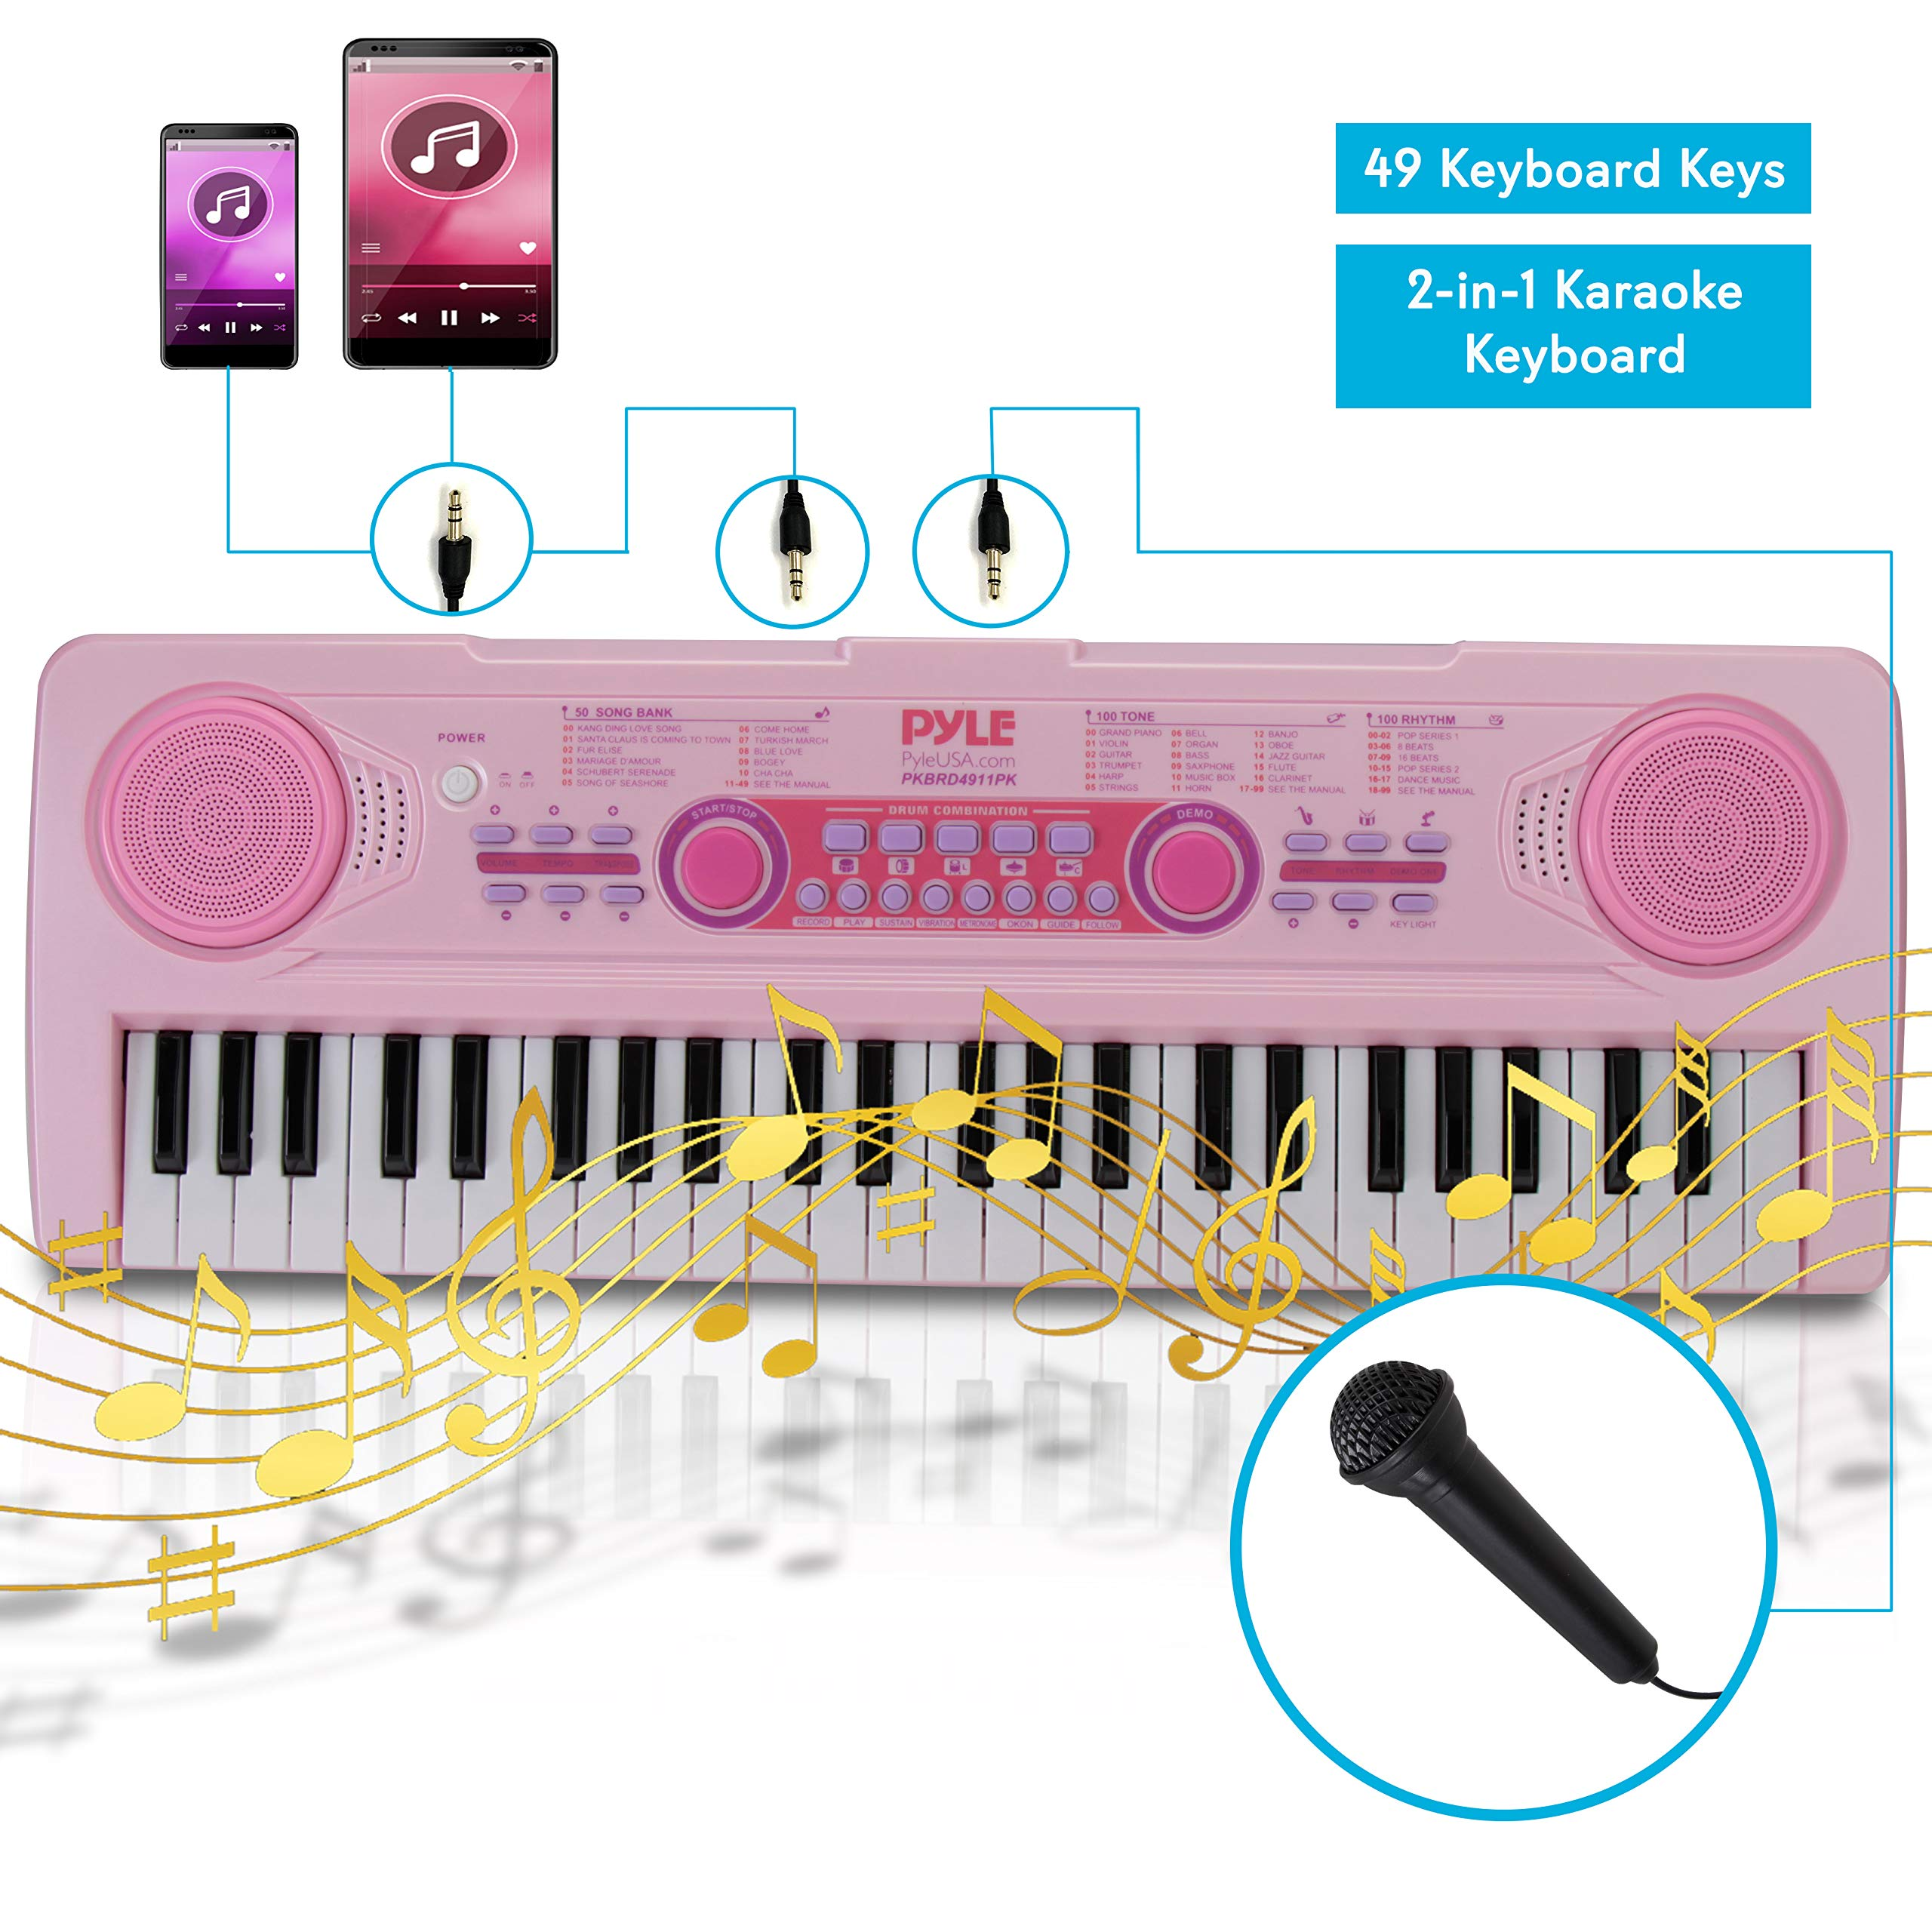 Electric Keyboard Piano for Kids-Portable 49 Key Electronic Musical Karaoke Keyboard, Learning Keyboard for Children w/Drum Pad, Recording, Microphone, Built-in Speaker-Pyle PKBRD4911PK (Pink)